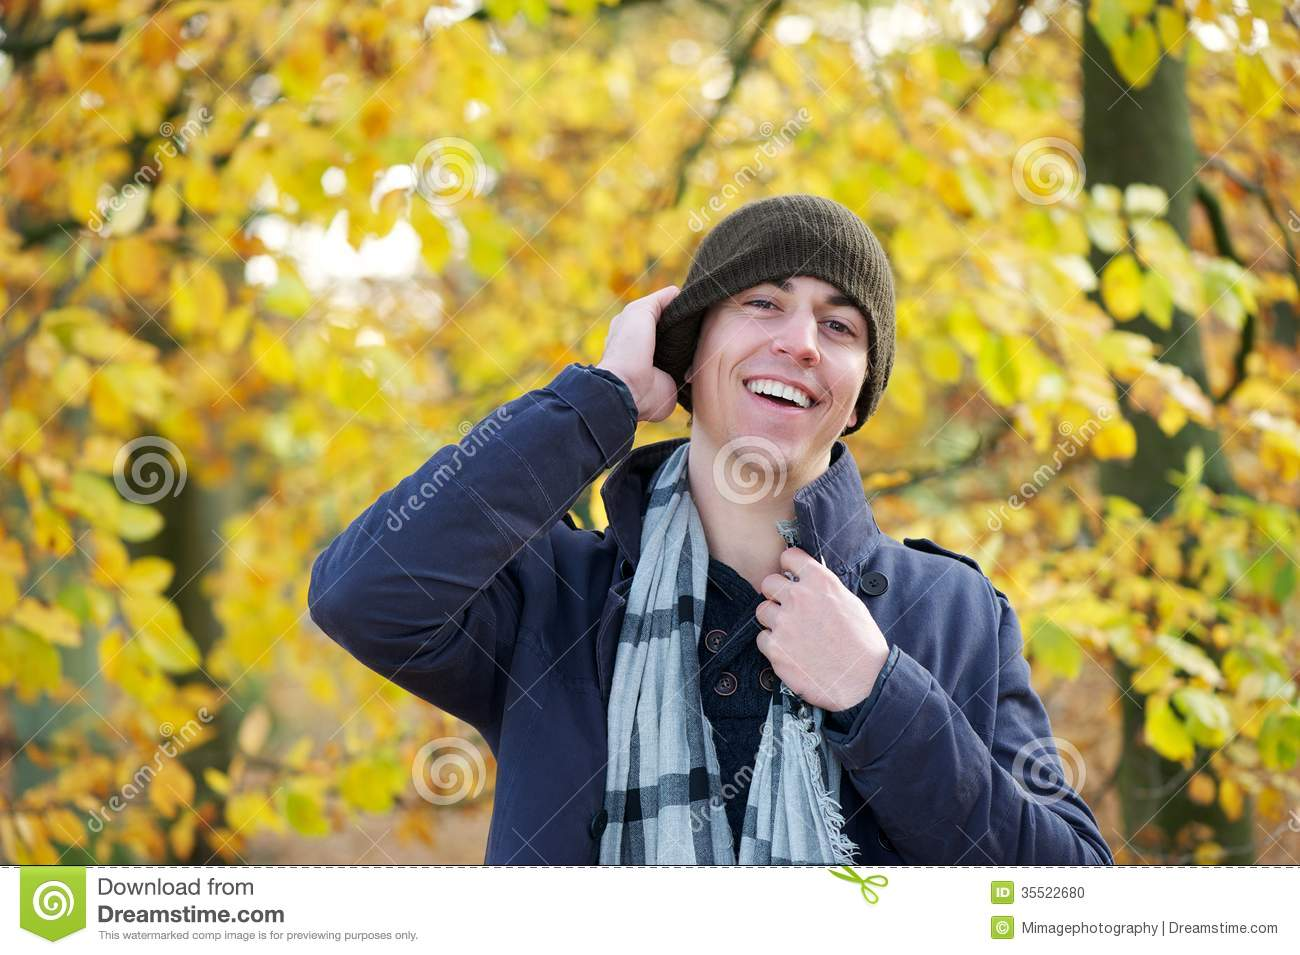 Portrait of a happy young man laughing outdoors with hat